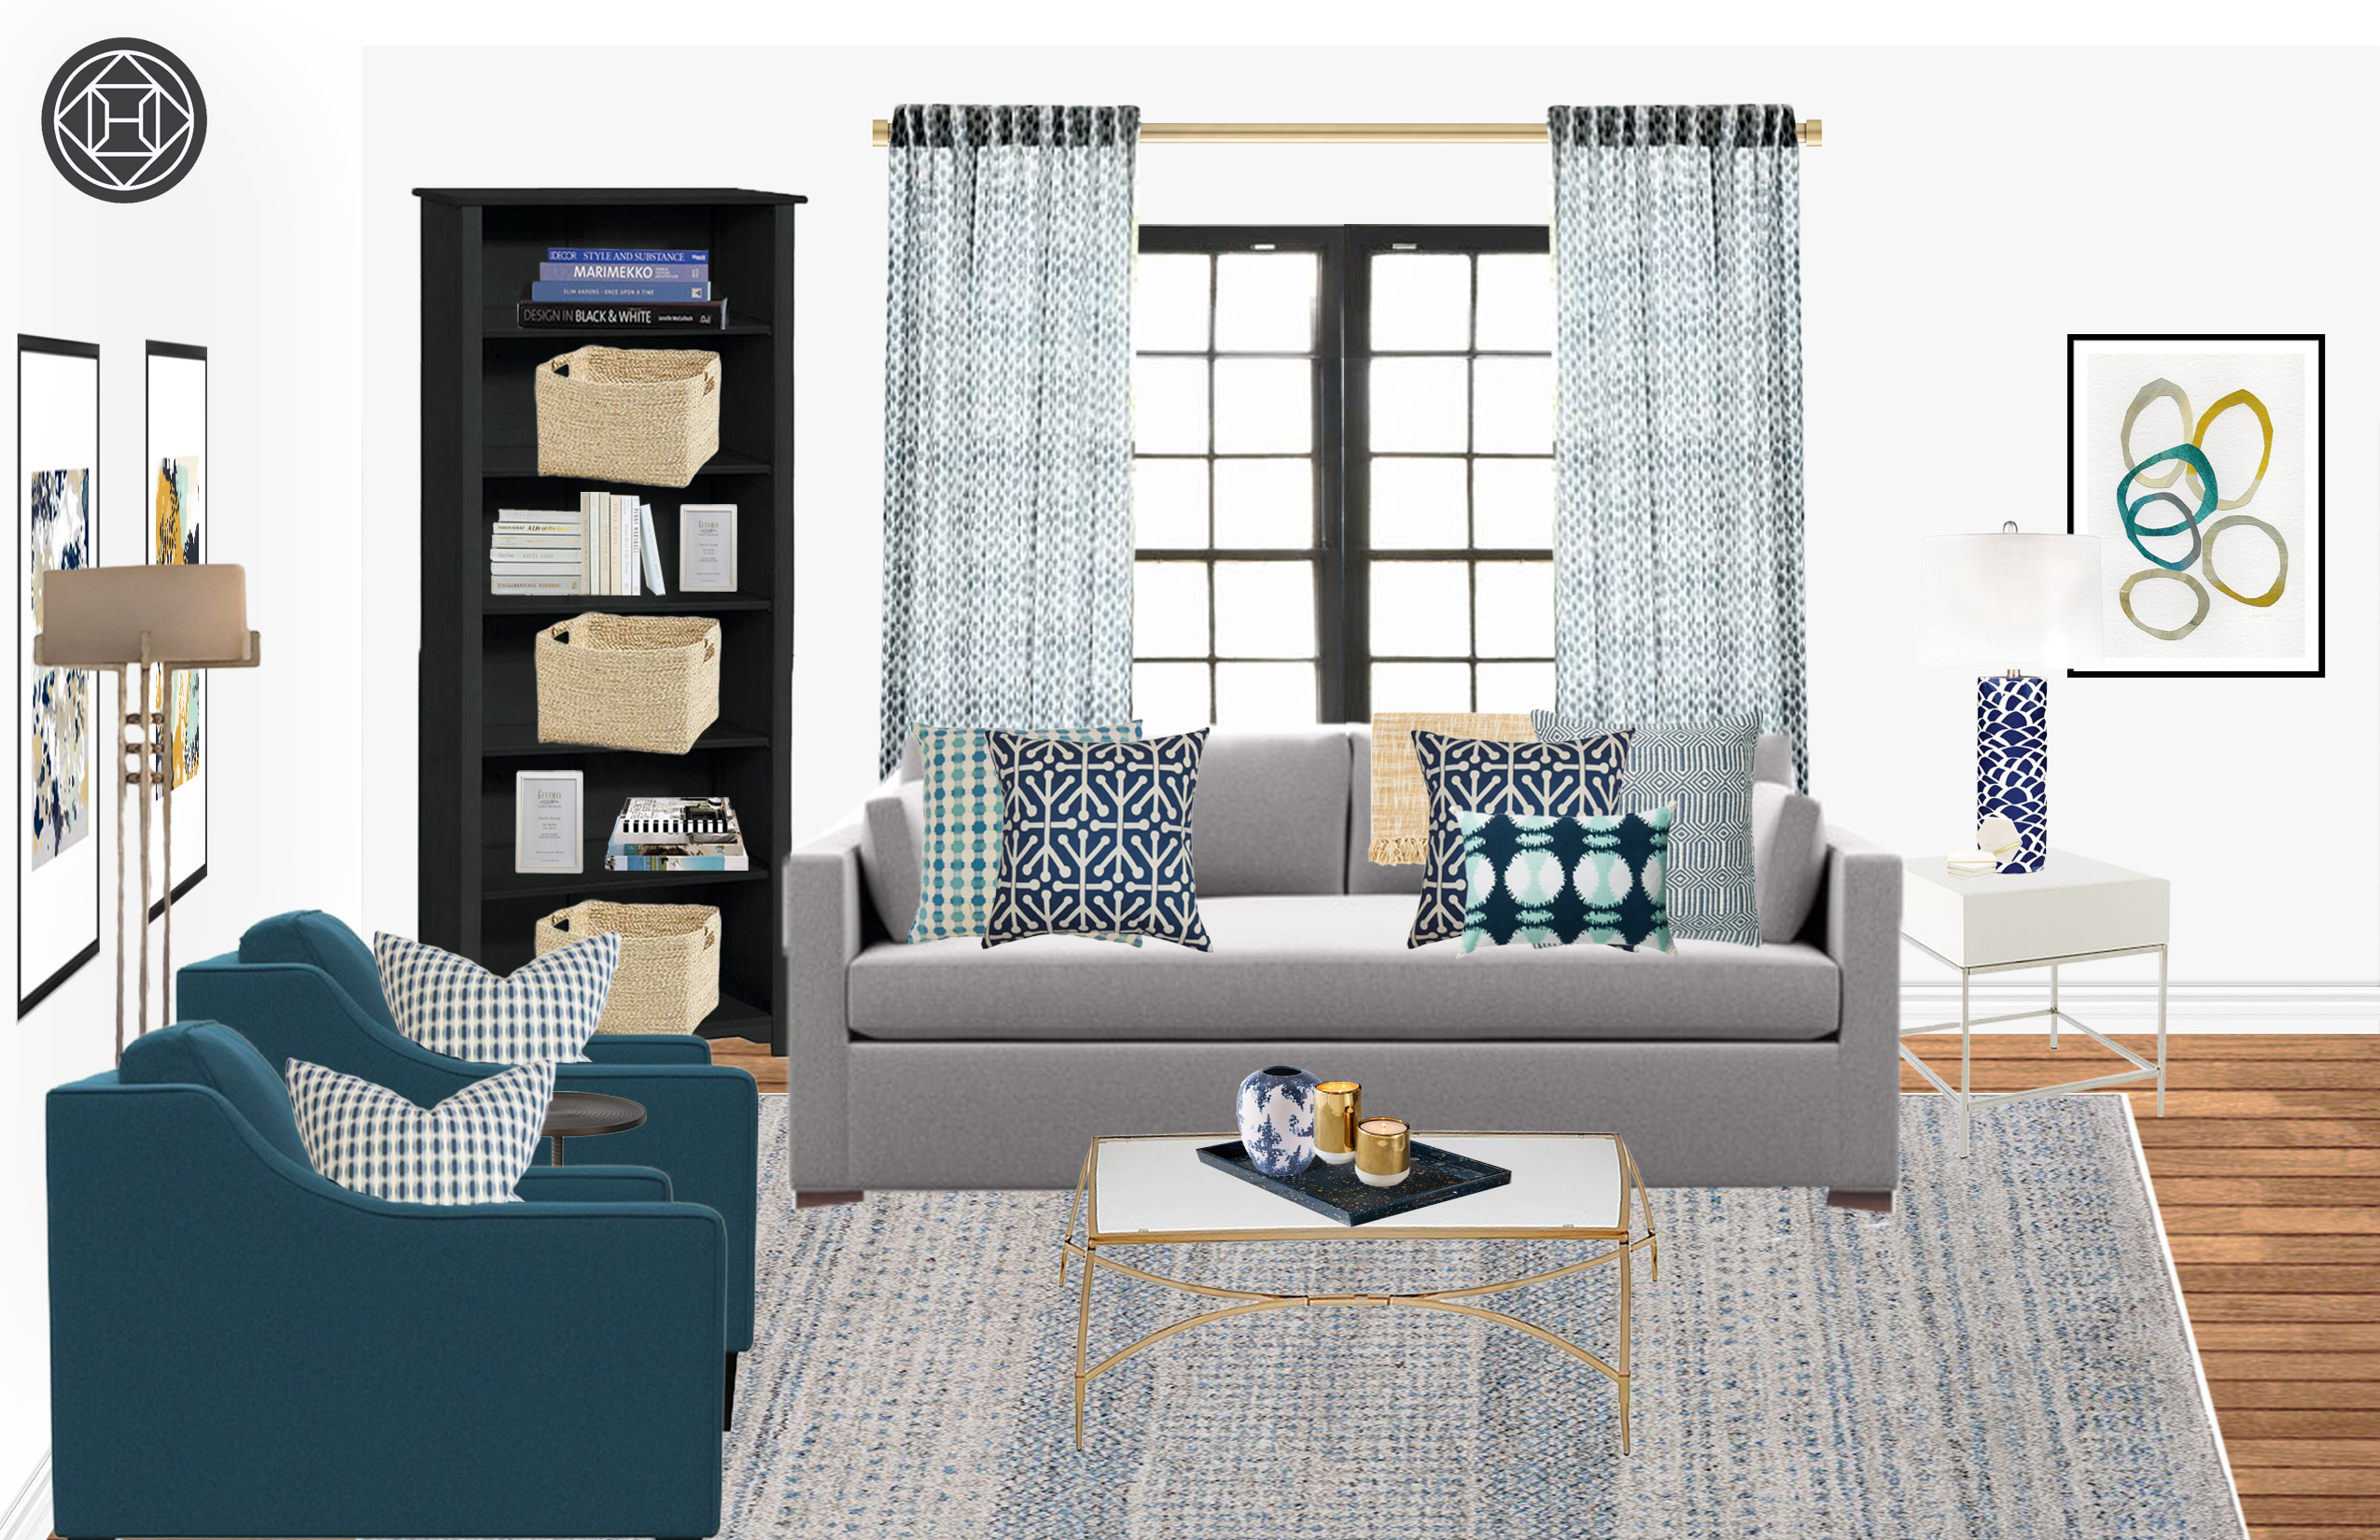 classic transitional living room design havenly interior phprwyzov knurl nesting accent tables set two with grey sofa easy table runner pattern barnwood coffee plans garden bench